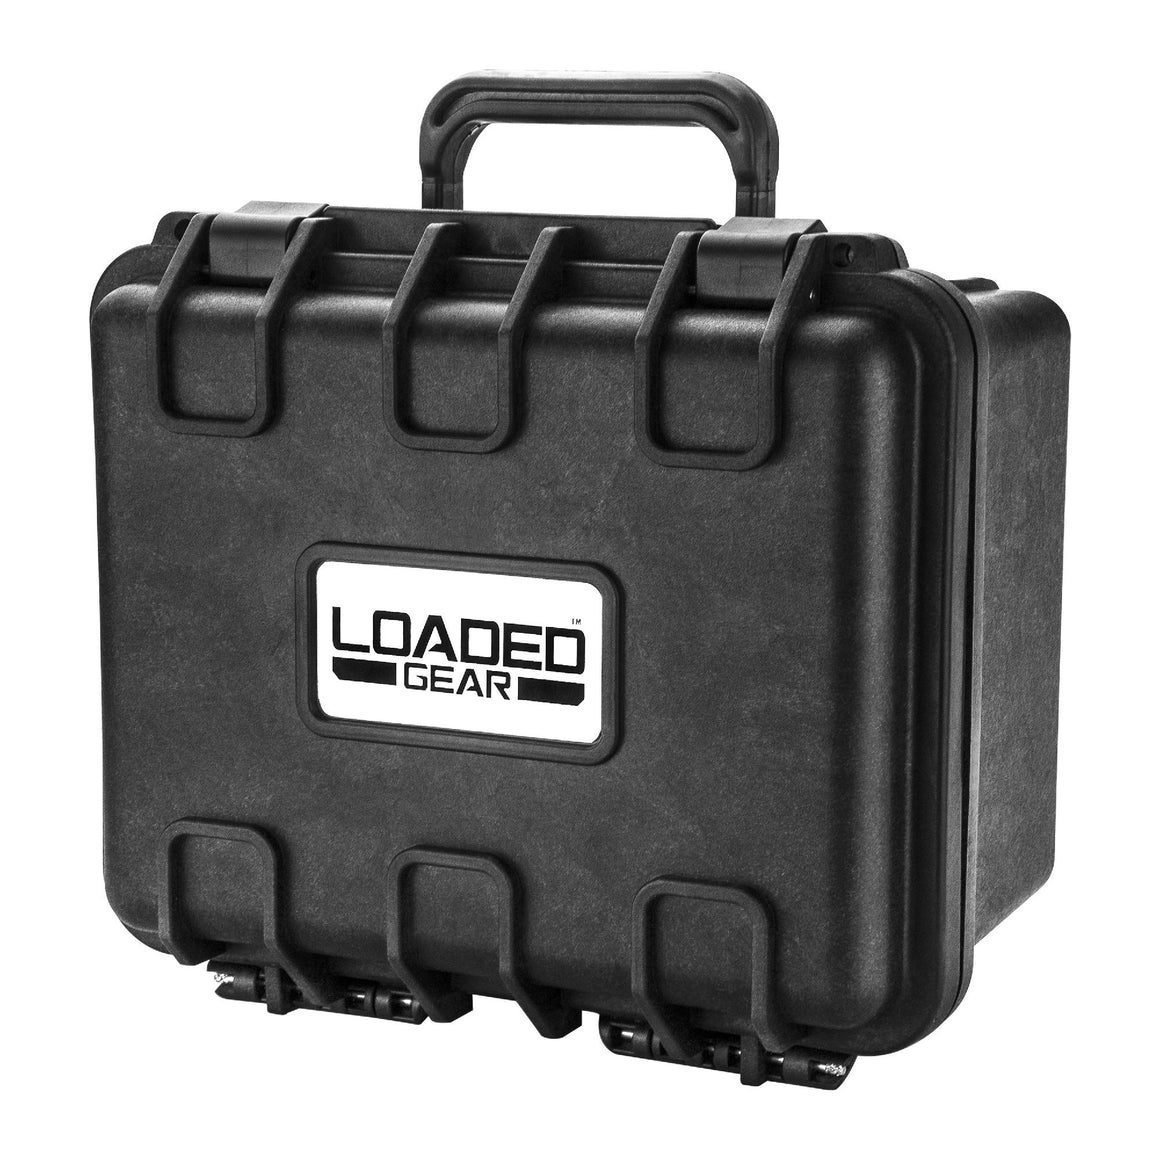 Loaded Gear - HD-150 WP, Hard Case, Matte Black